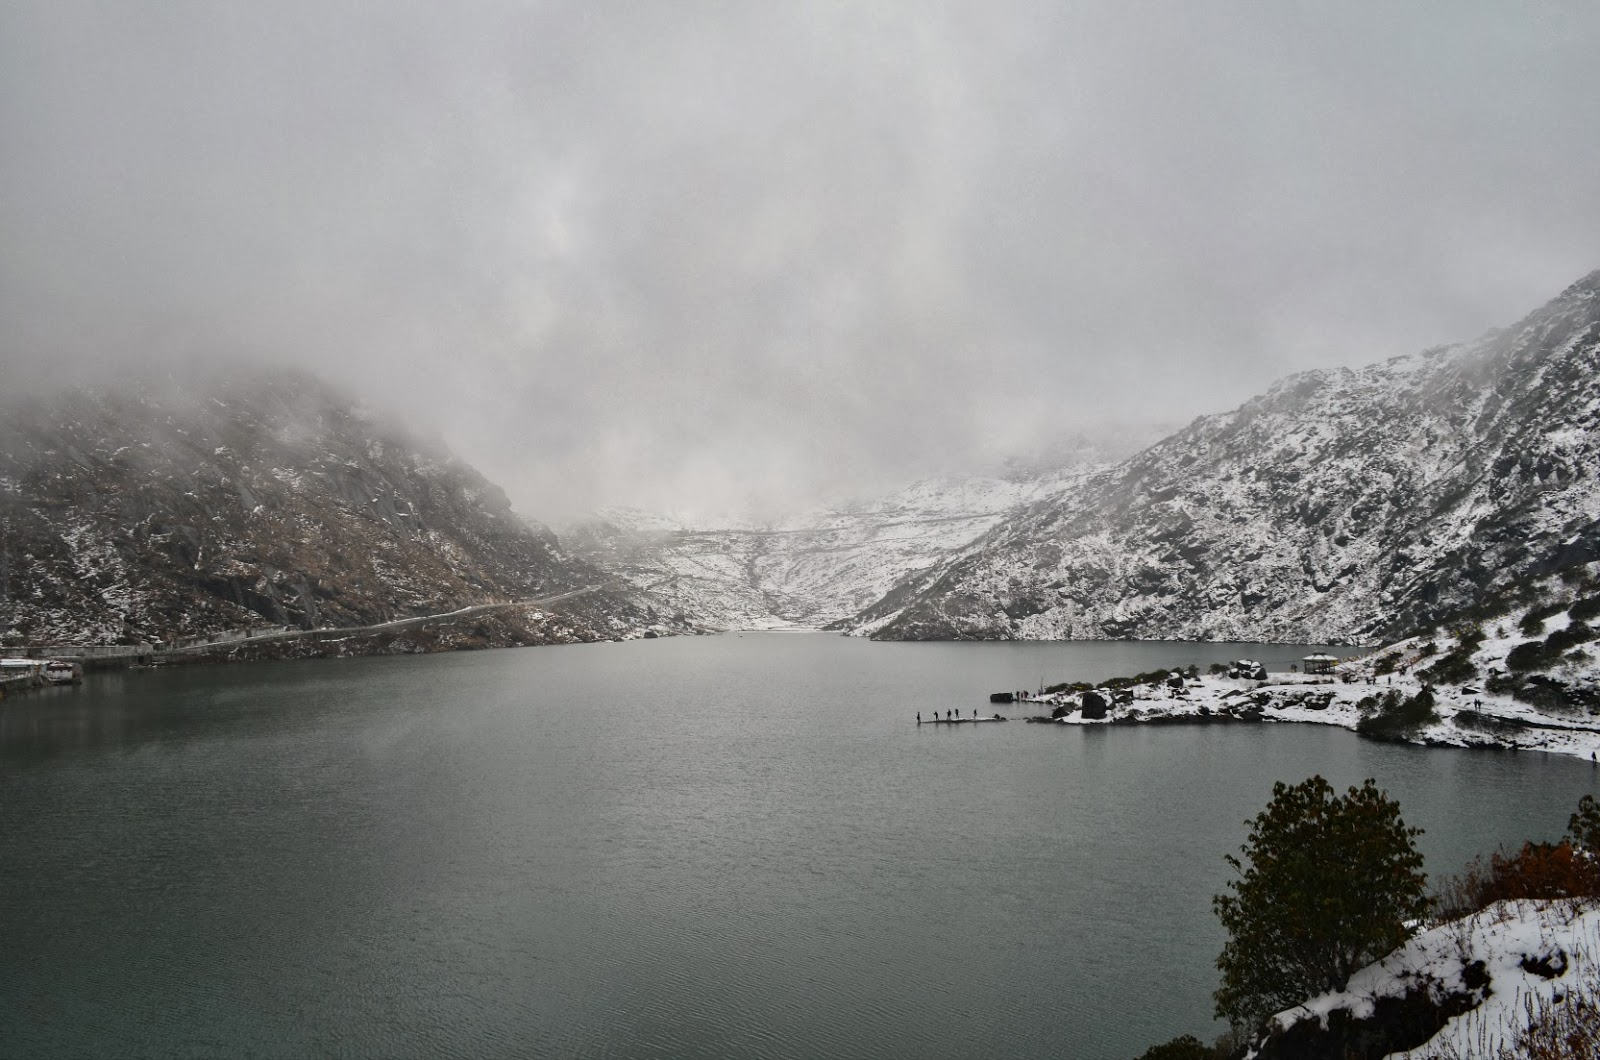 Tsomgo/Changu Lake, Sikkim, India